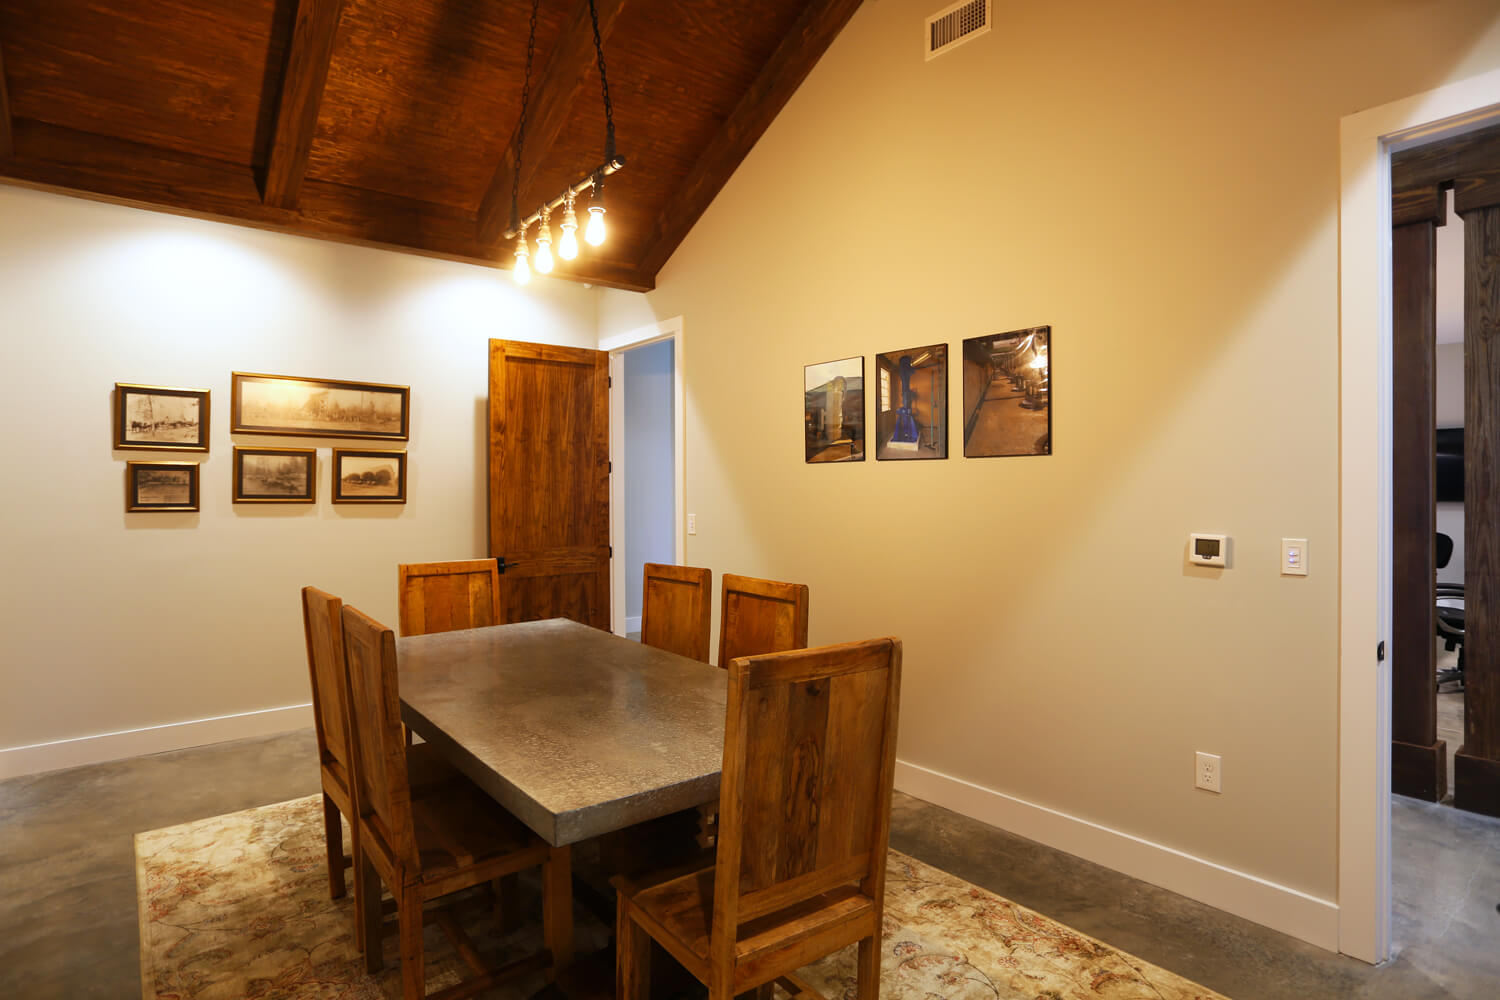 Johnson Office - Conference Room - Designed by Foshee Architecture